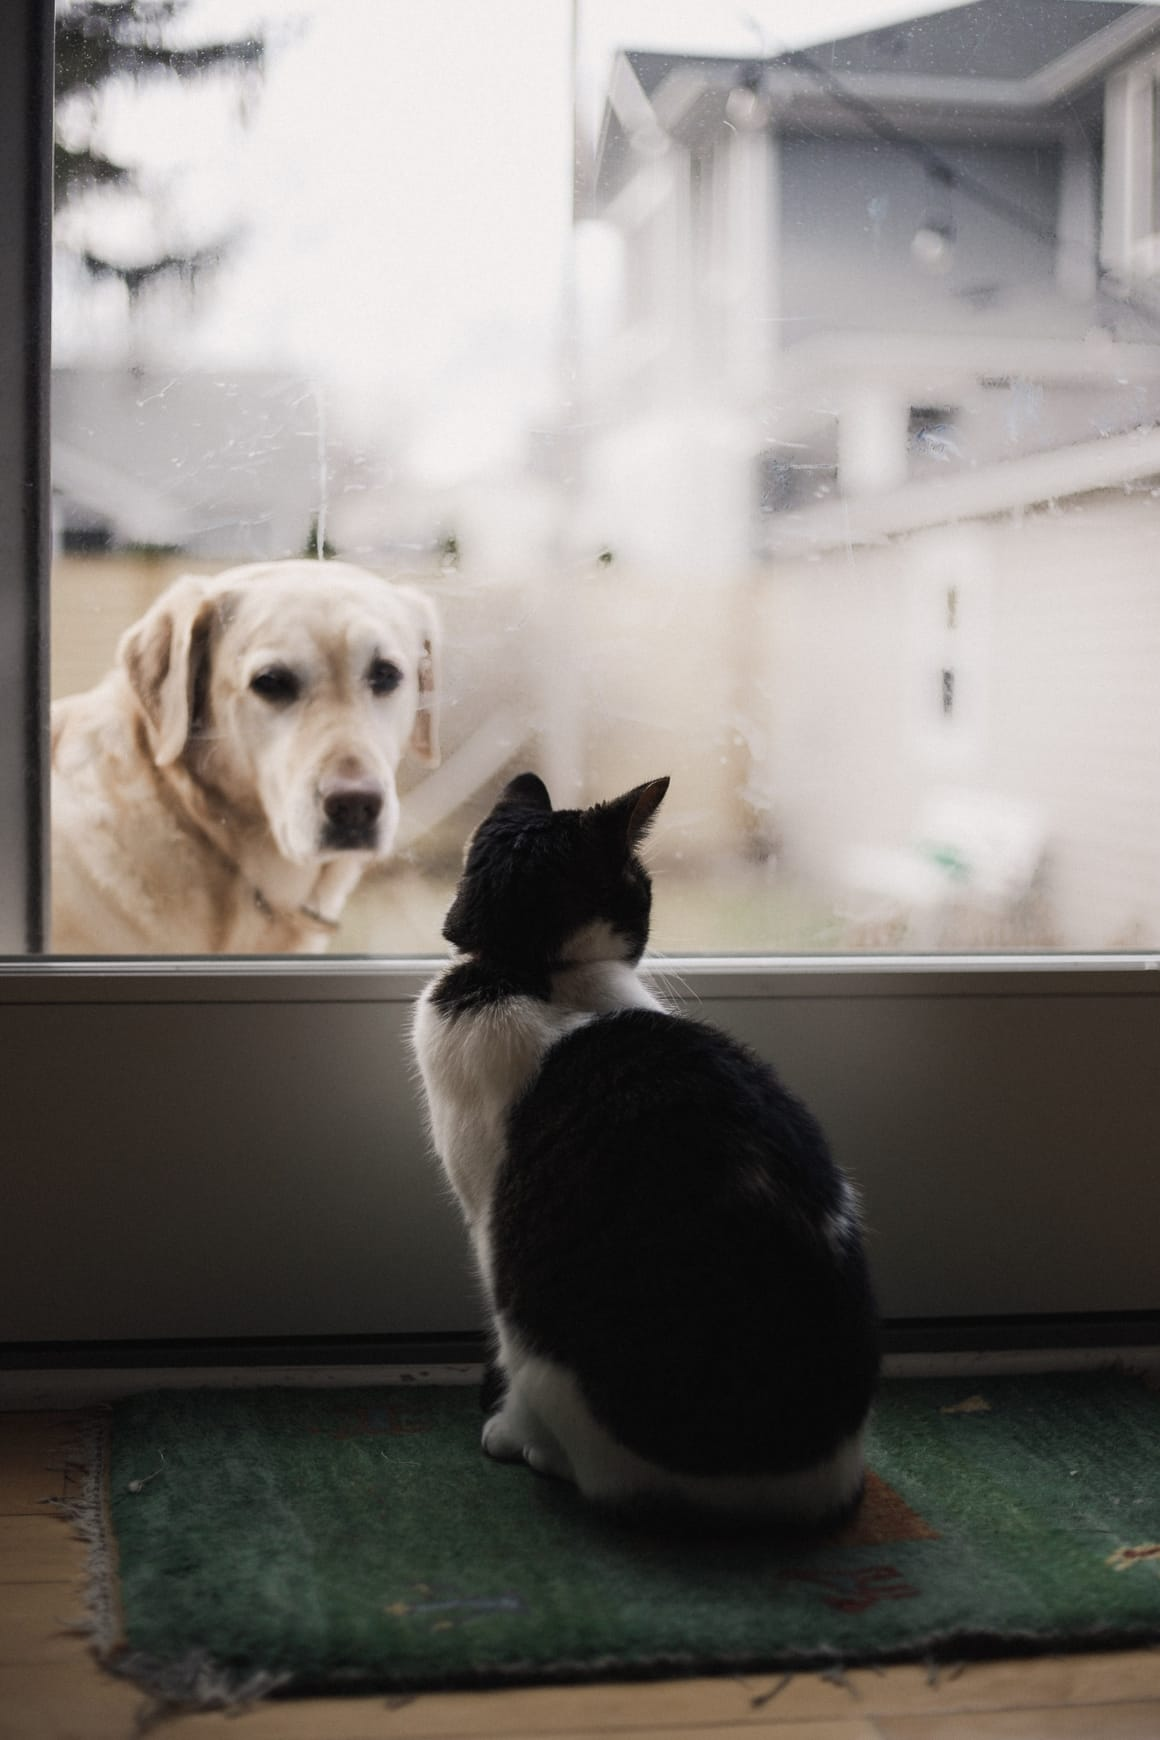 Dog looking out at the cat through a glass door